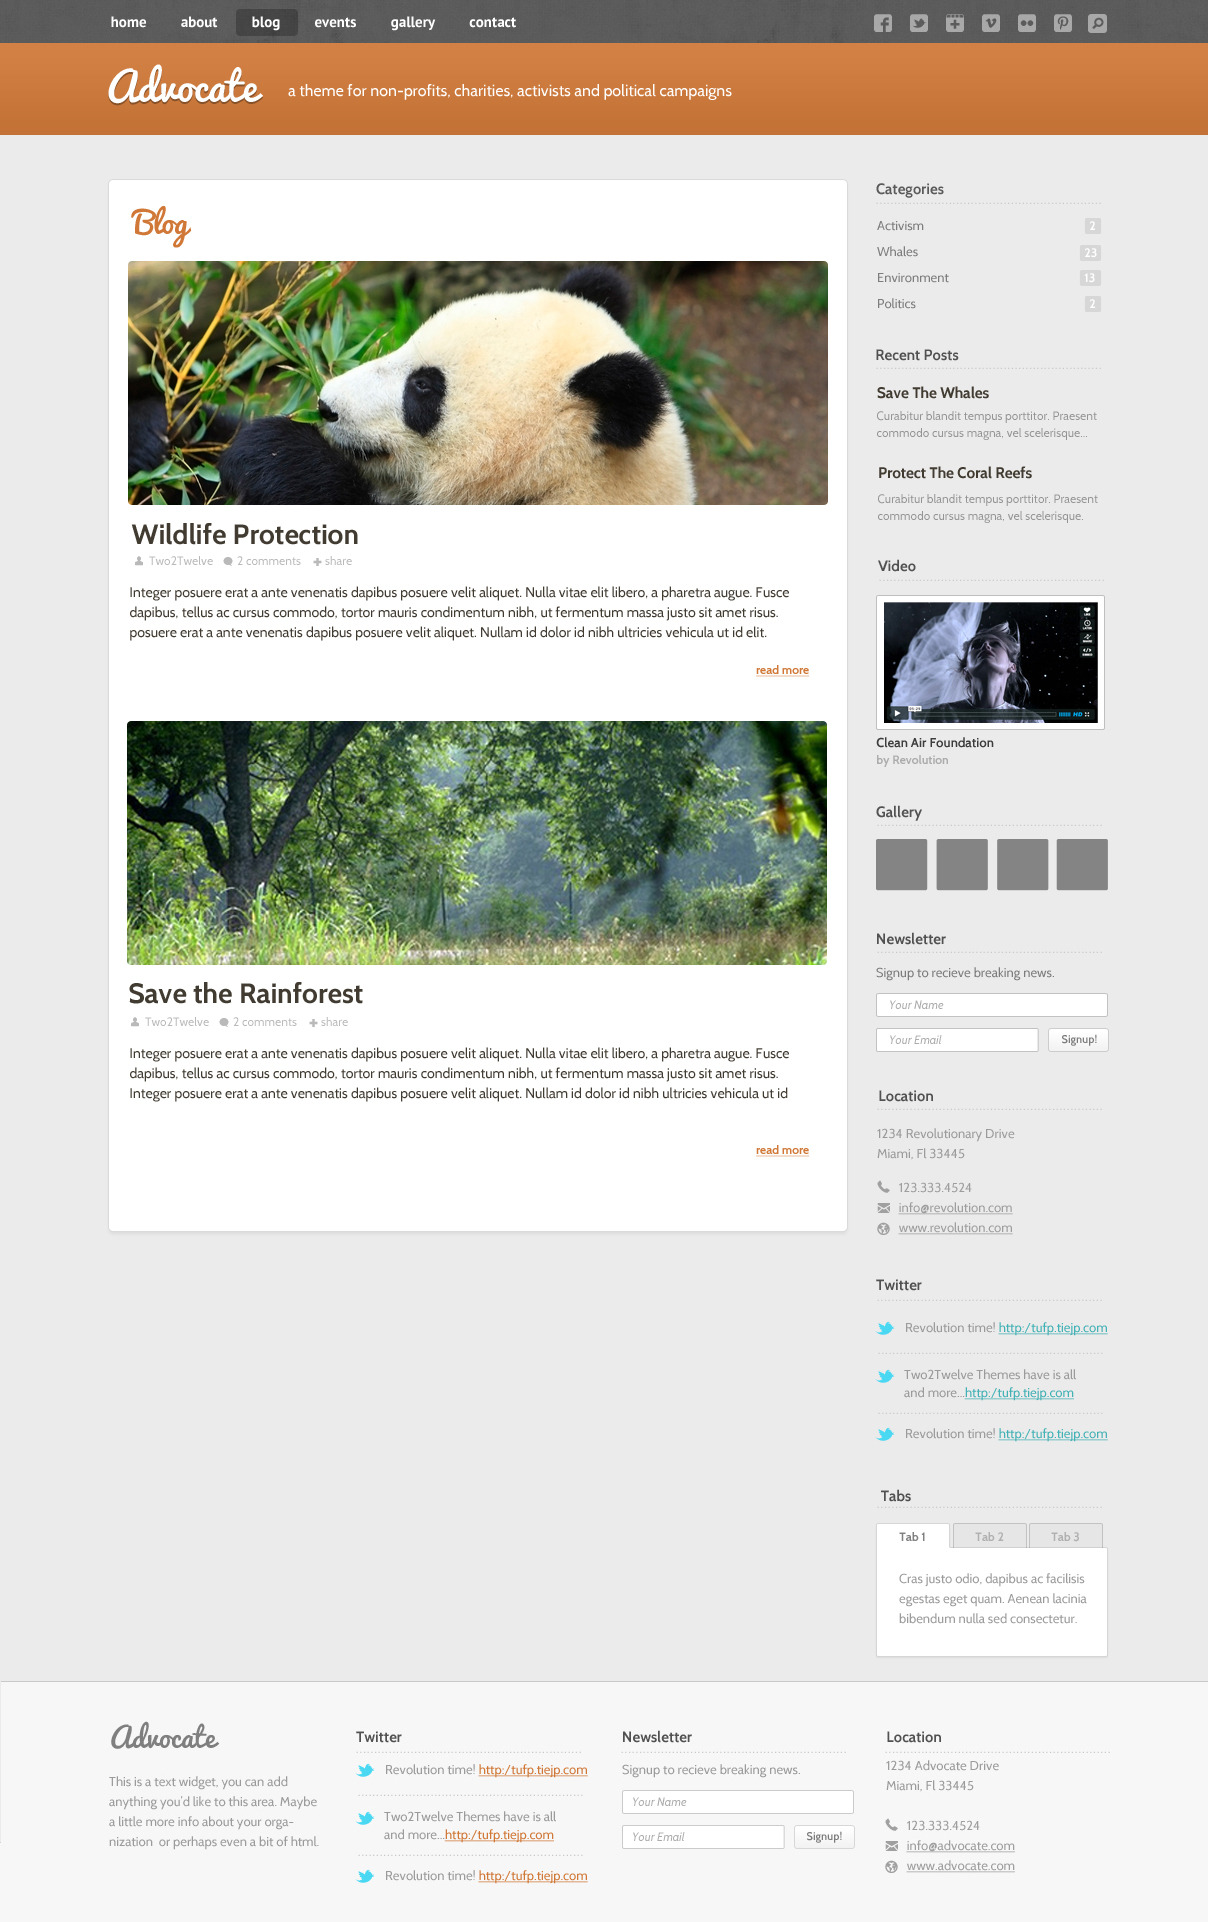 Advocate - A Nonprofit WordPress Theme - Blog - The blog can be used to display images or mini-sliders along with your blog posts and custom sidebar widgets.